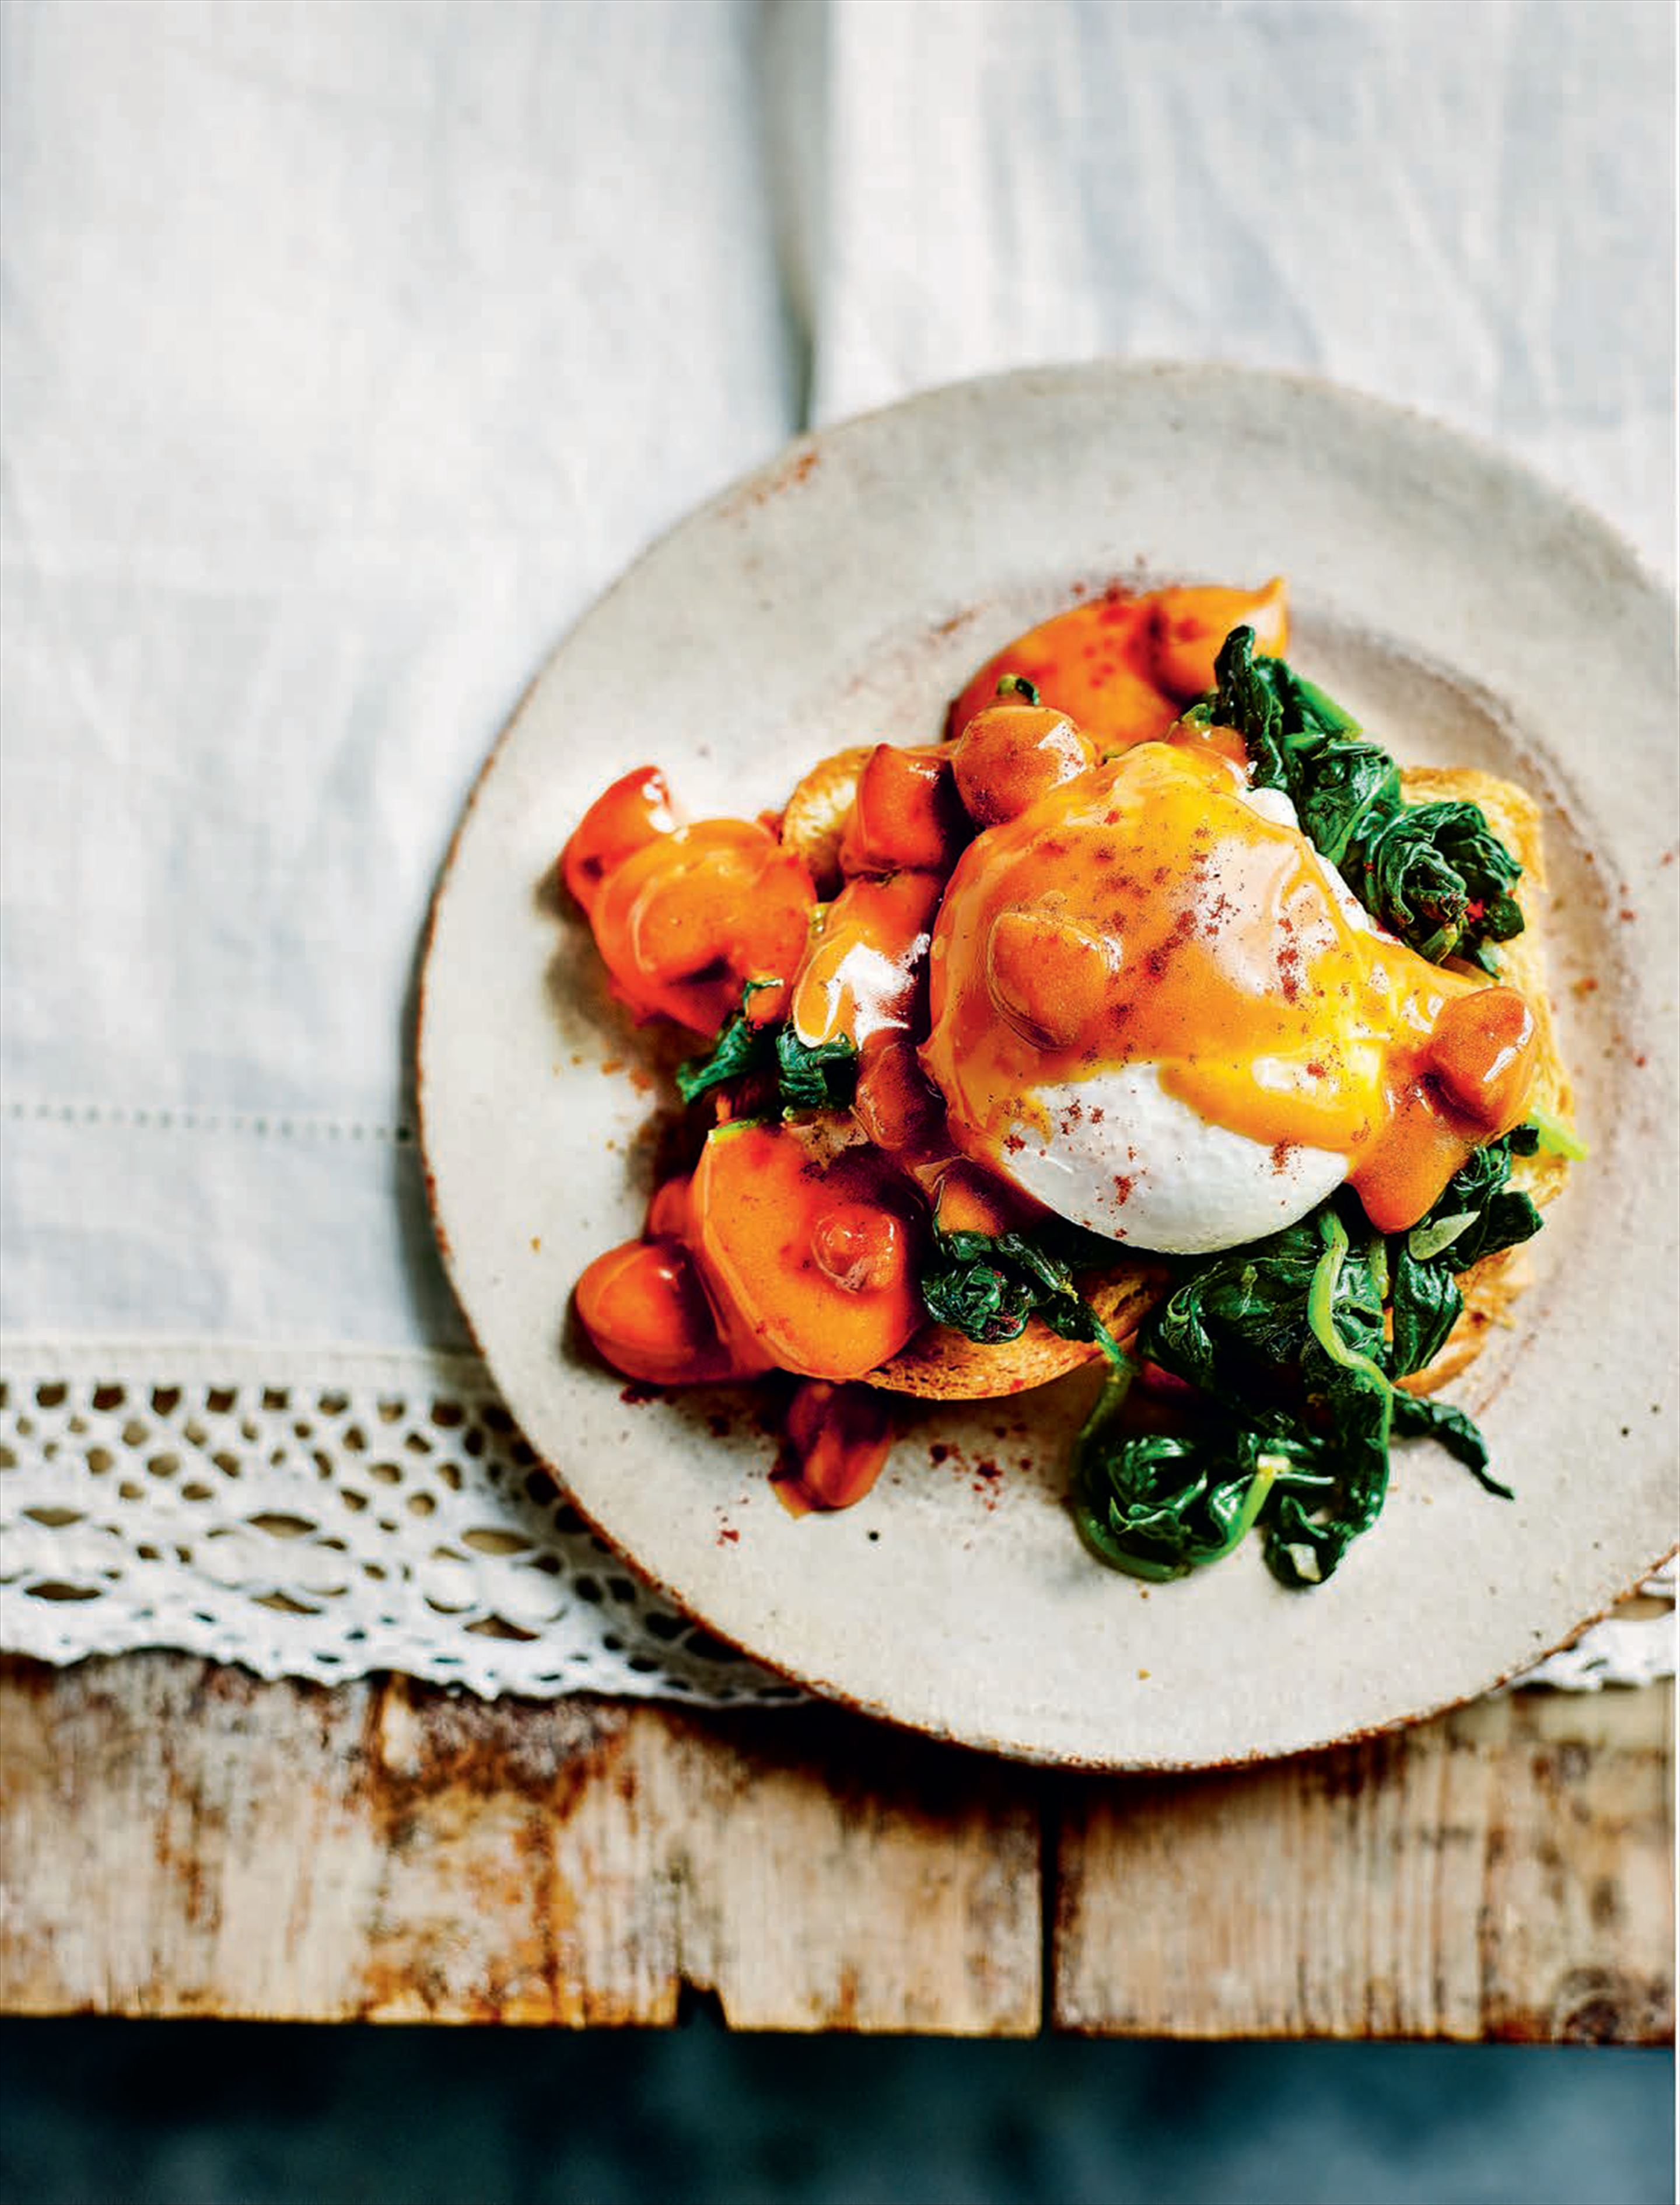 Eggs benedict with spinach and chorizo hollandaise